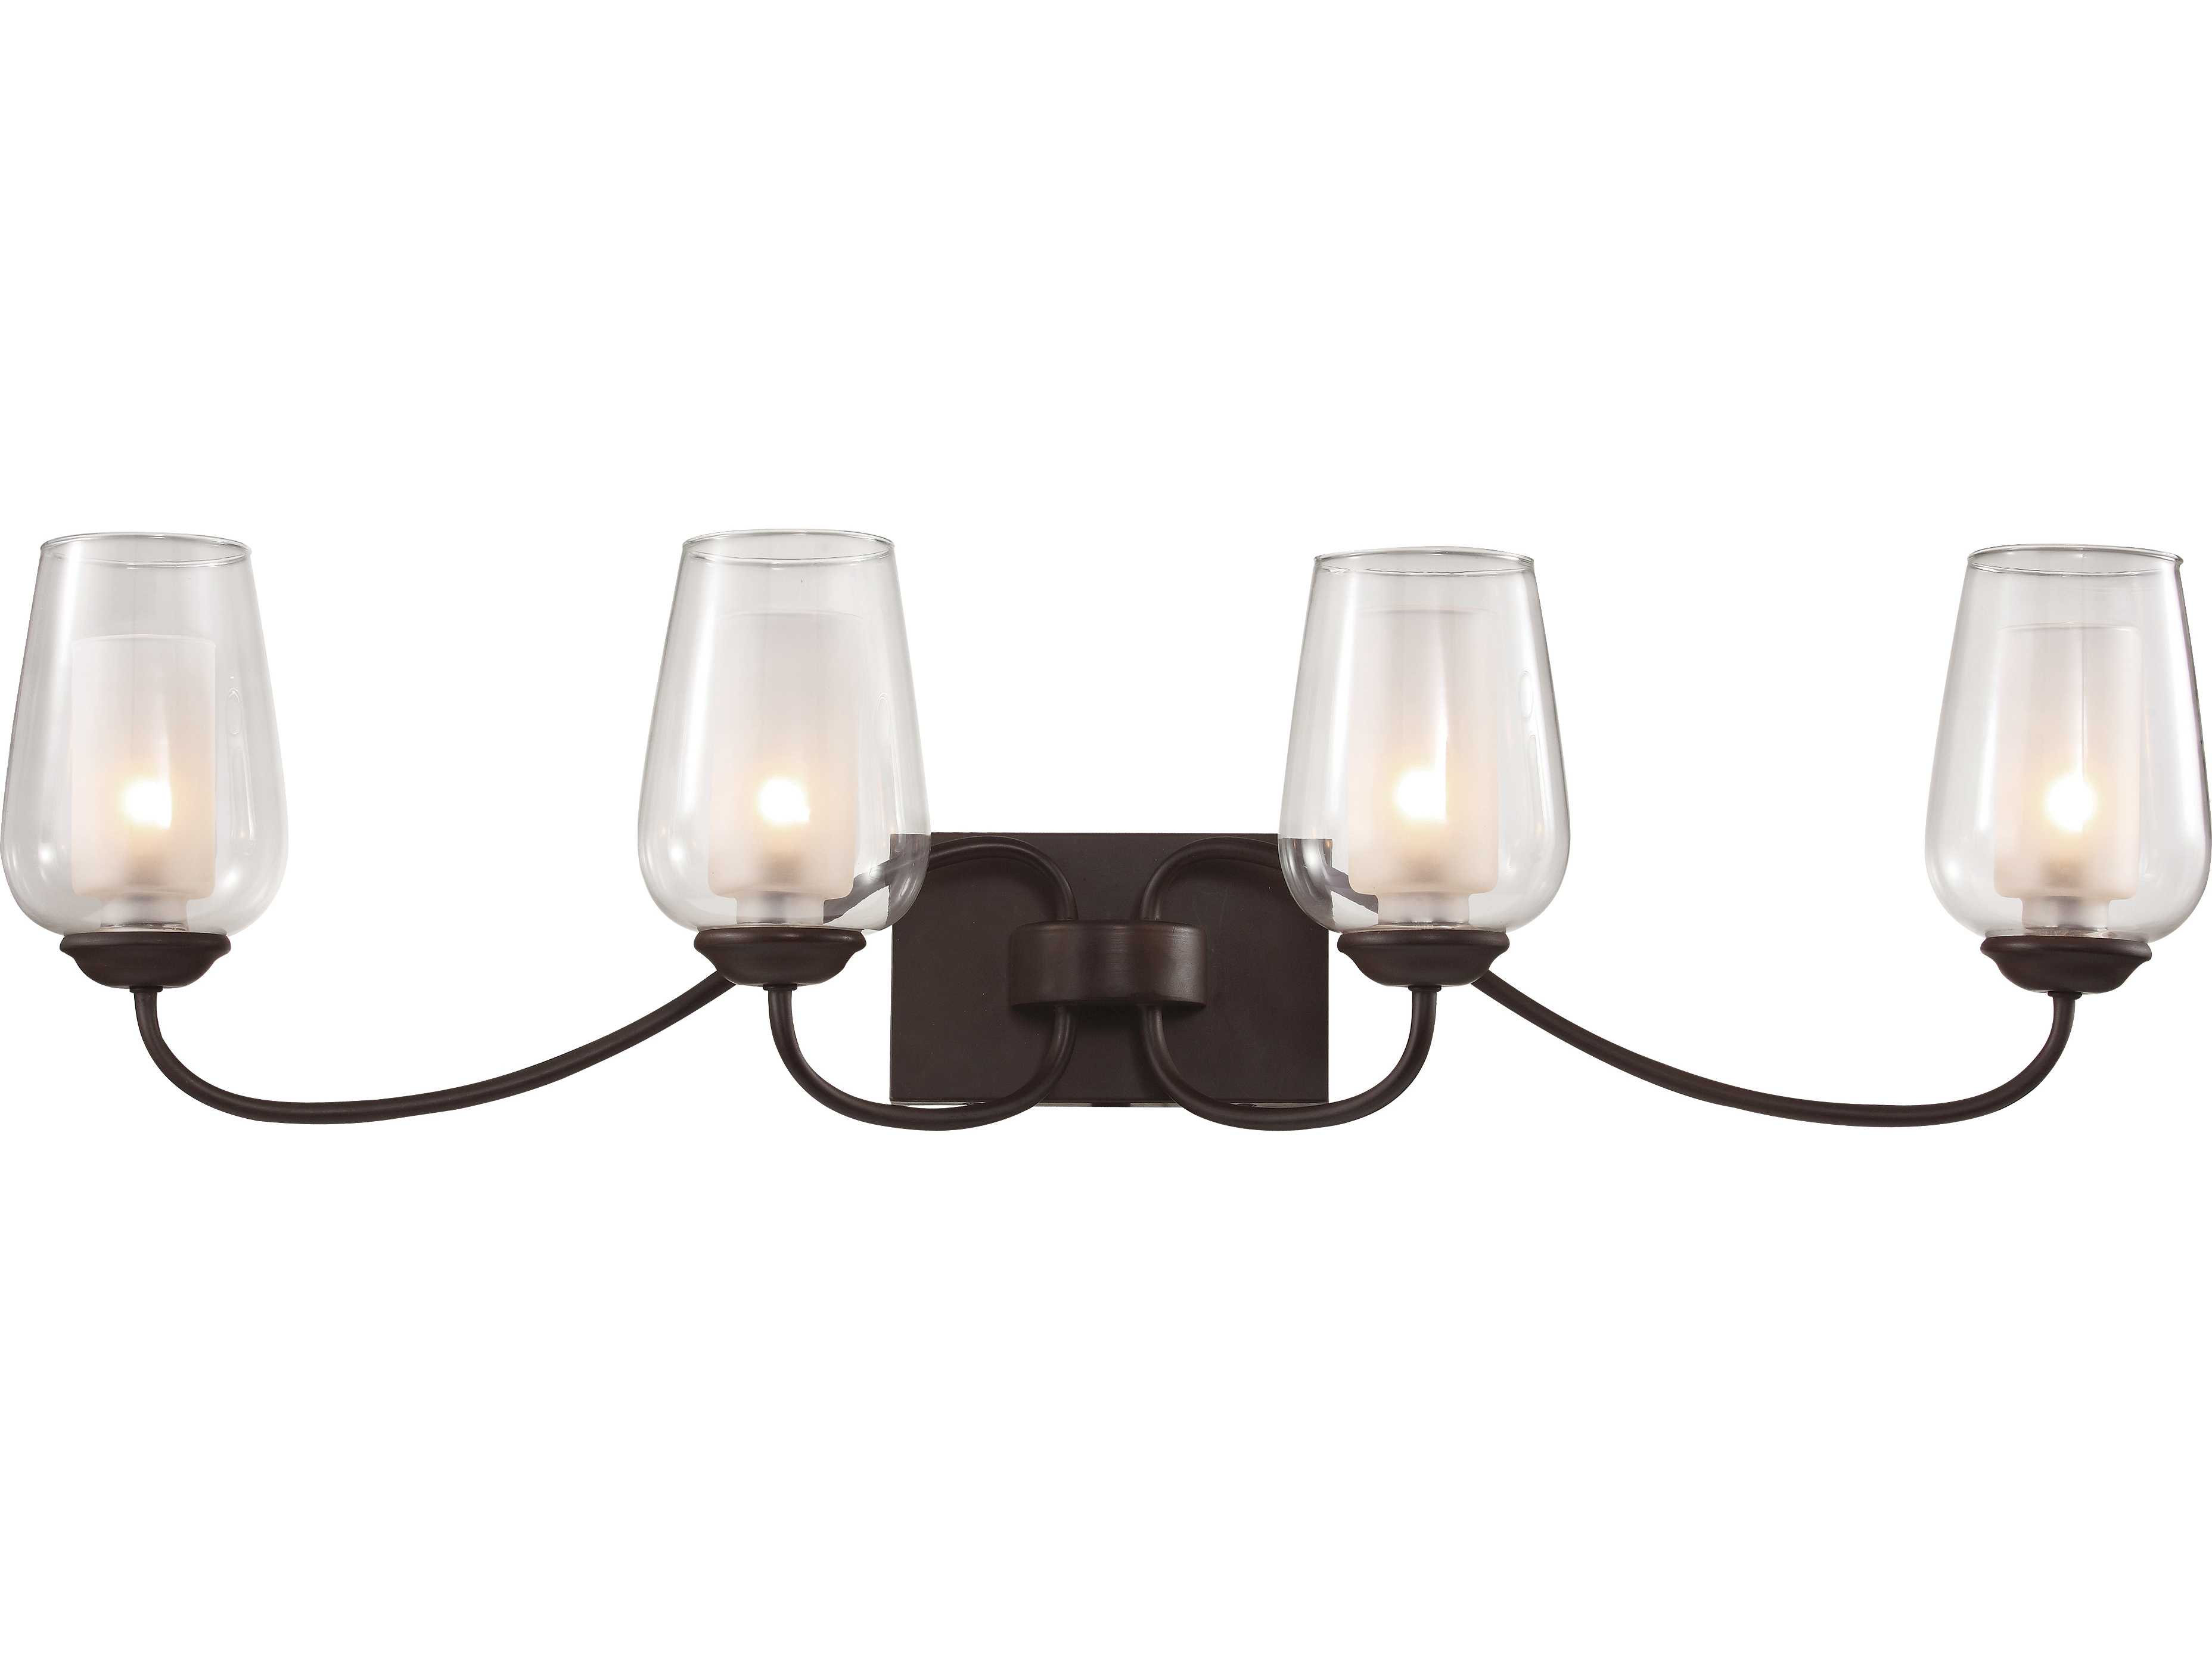 Trans Globe Lighting Rustic Lodge Oil Rubbed Bronze Four-Light Vanity Light 70384-ROB